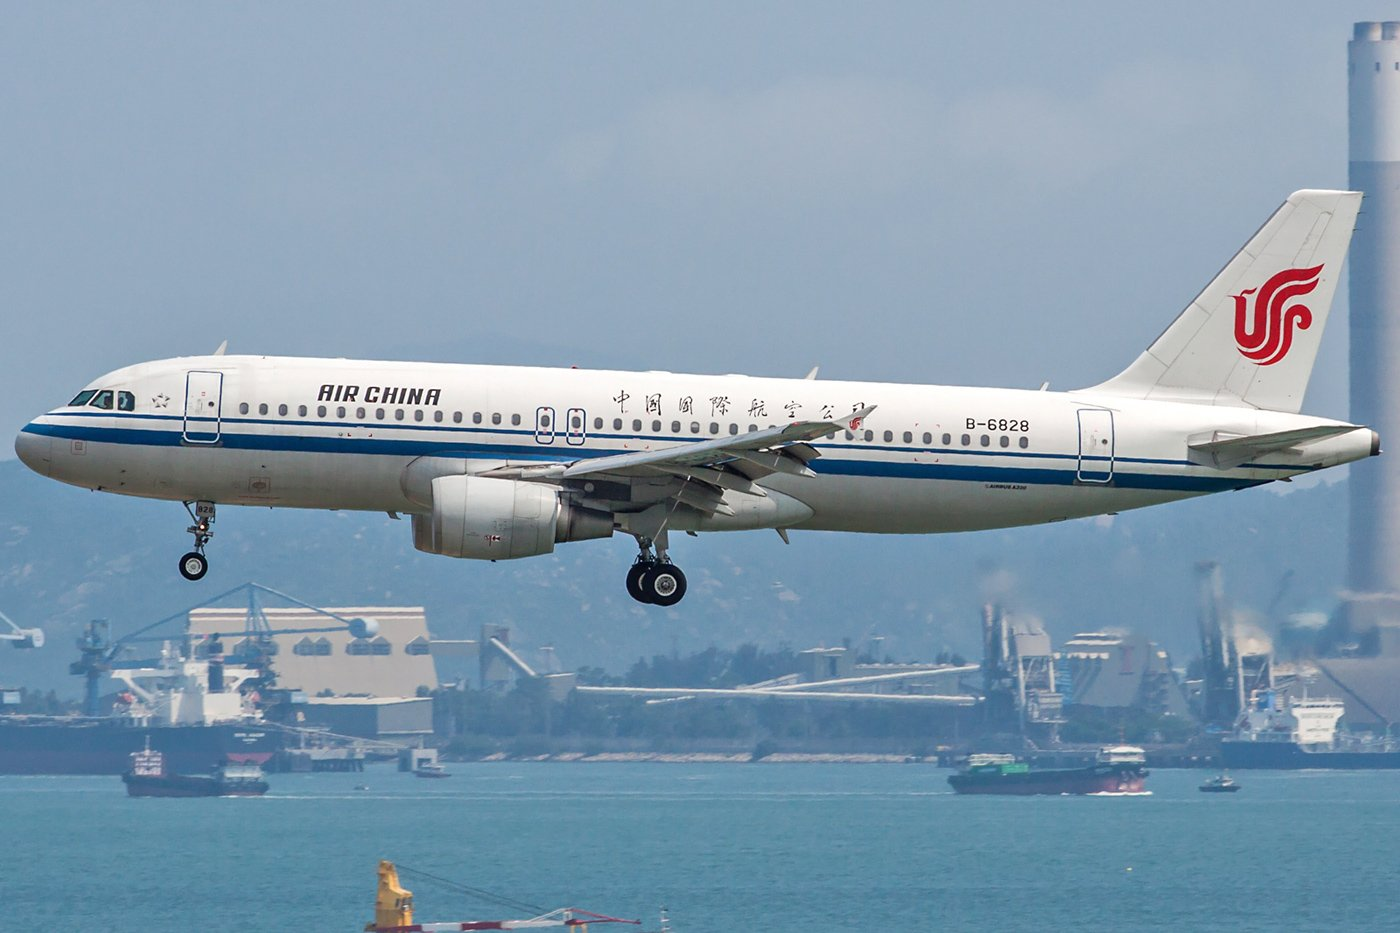 Air China Airbus A320-214 B-6828